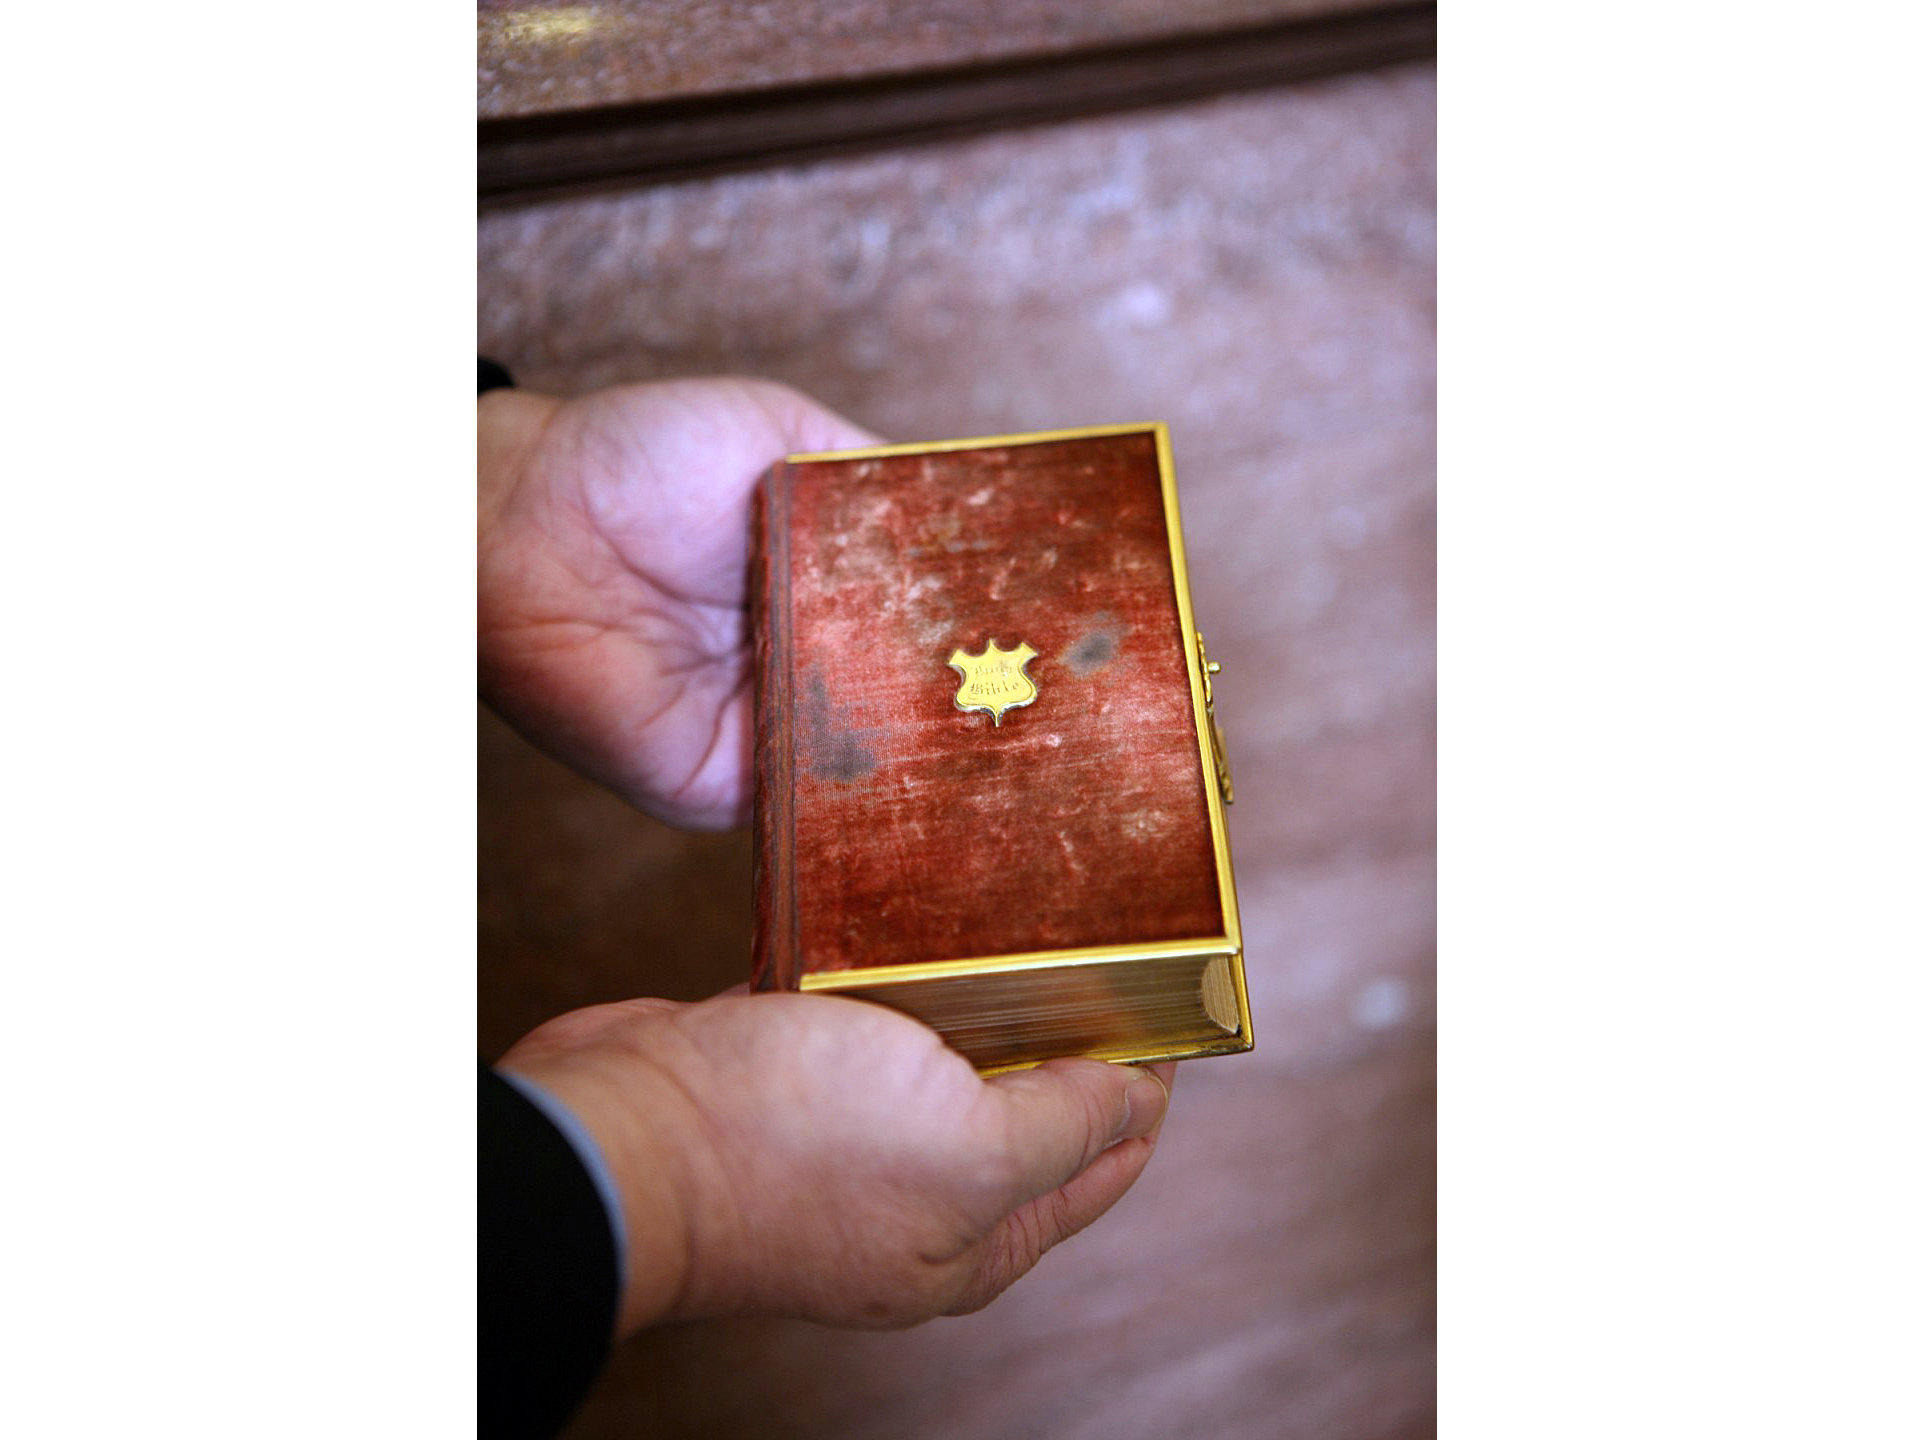 [Abraham Lincoln swore the oath upon this Bible. President-elect Donald Trump has selected it as his swearing-in Bible. / Photo courtesy of the Library of Congress]